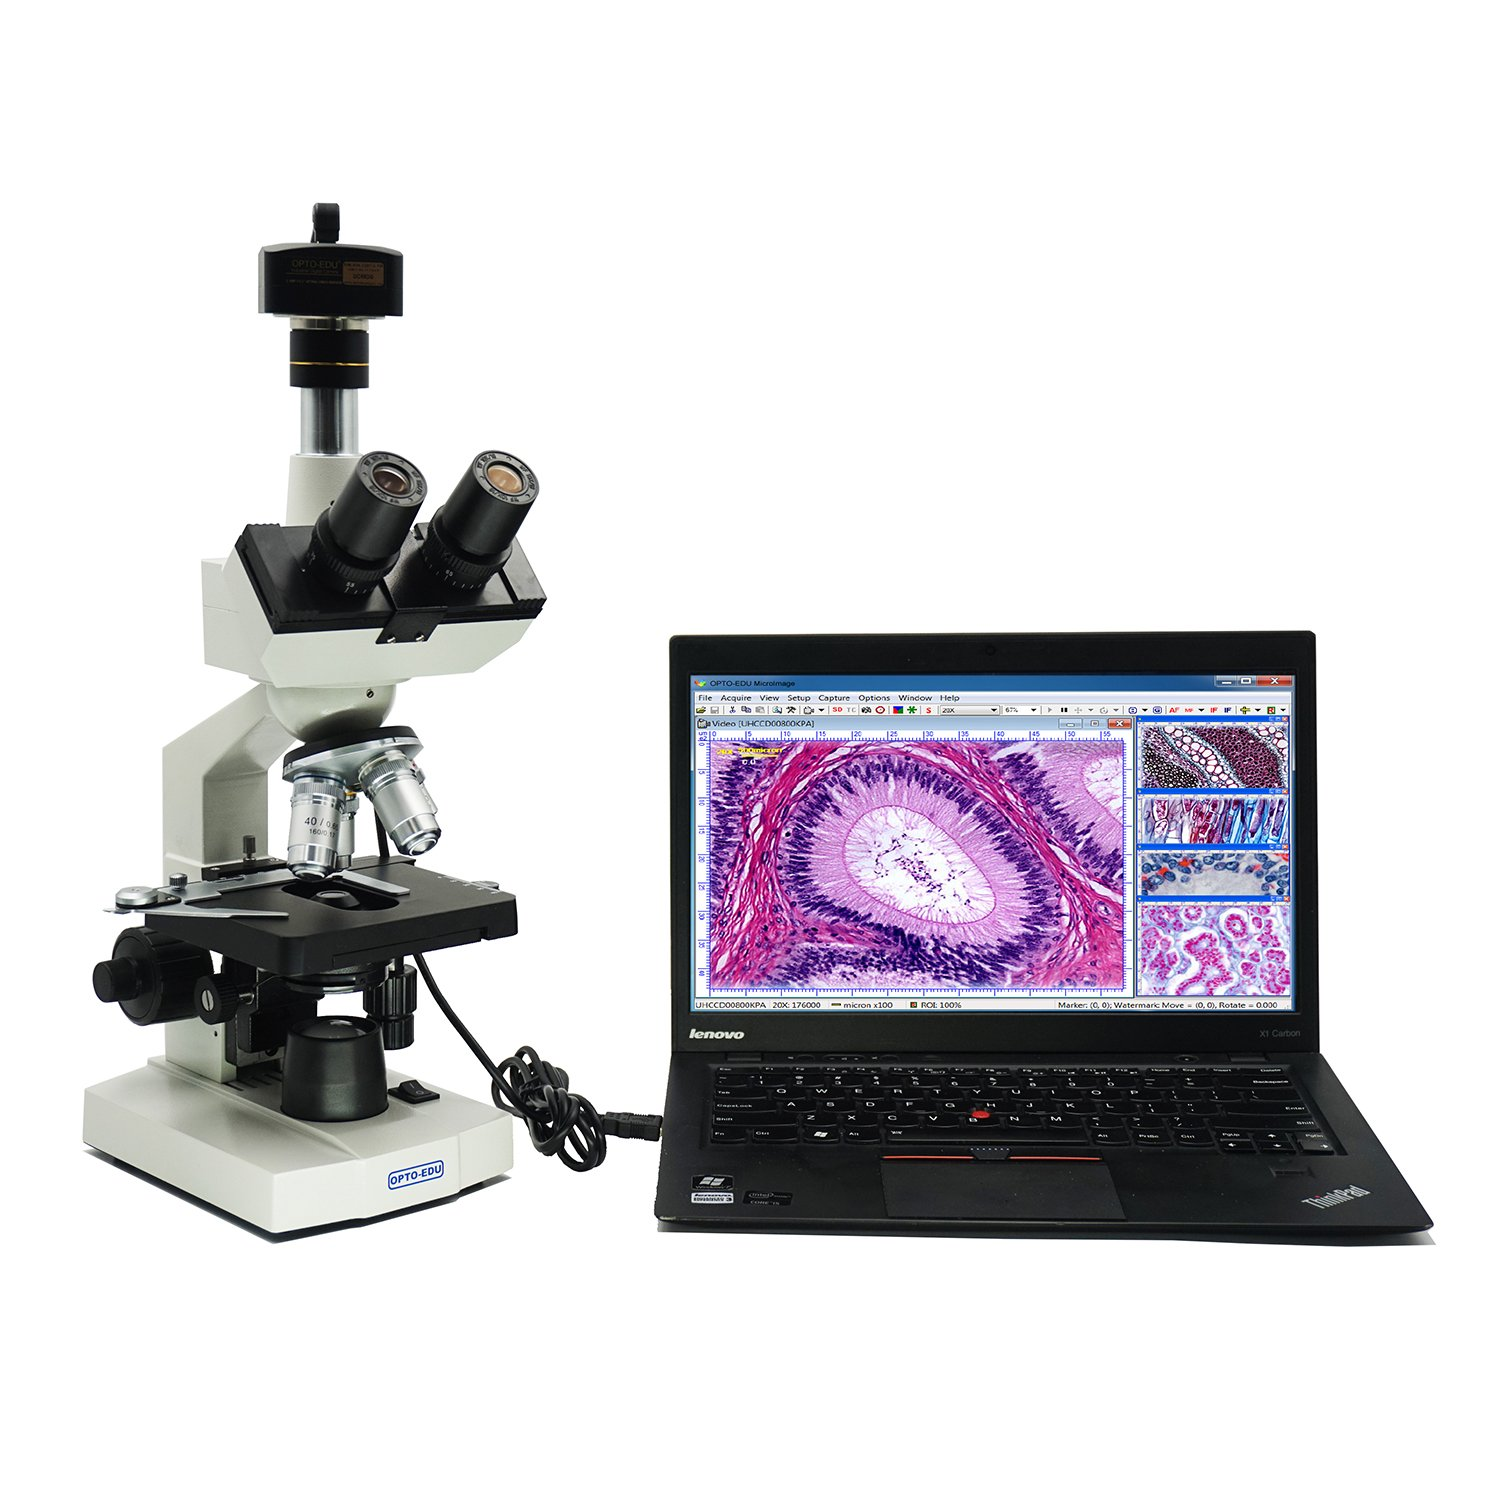 OPTO-EDU A11.1009-F5M 40X-2000X Digital Lab Trinocular Compound LED Microscope with 5 MP Digital Camera and Double Layer Mechanical Stage, Metal, Glass, Plastic